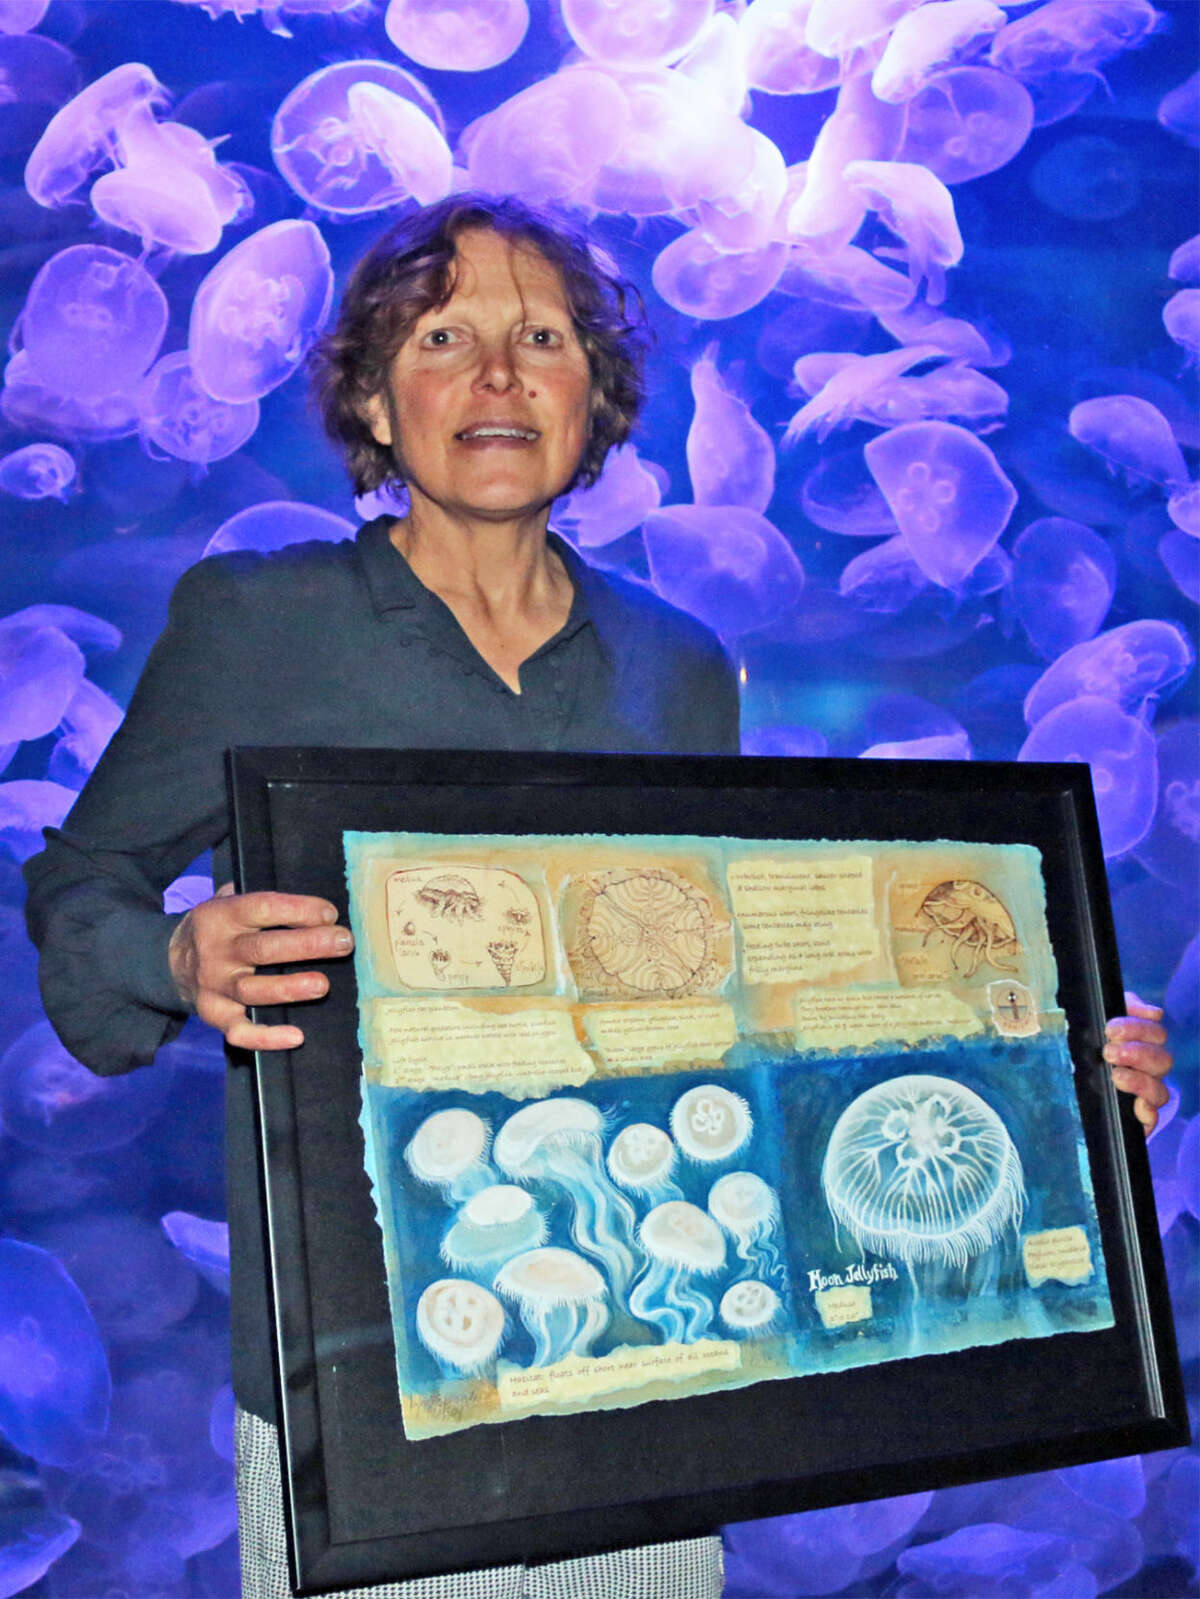 """Norwalk artist Lynn Stephens Massey holds her watercolor studies on jellyfish in front of the Maritime Aquarium at Norwalk's exhibit of moon jellies. An exhibit of her paintings of local aquatic life, """"Aqua Marine,"""" is display at the aquarium throughSaturday.Find out more:http://bit.ly/1SyoIma"""